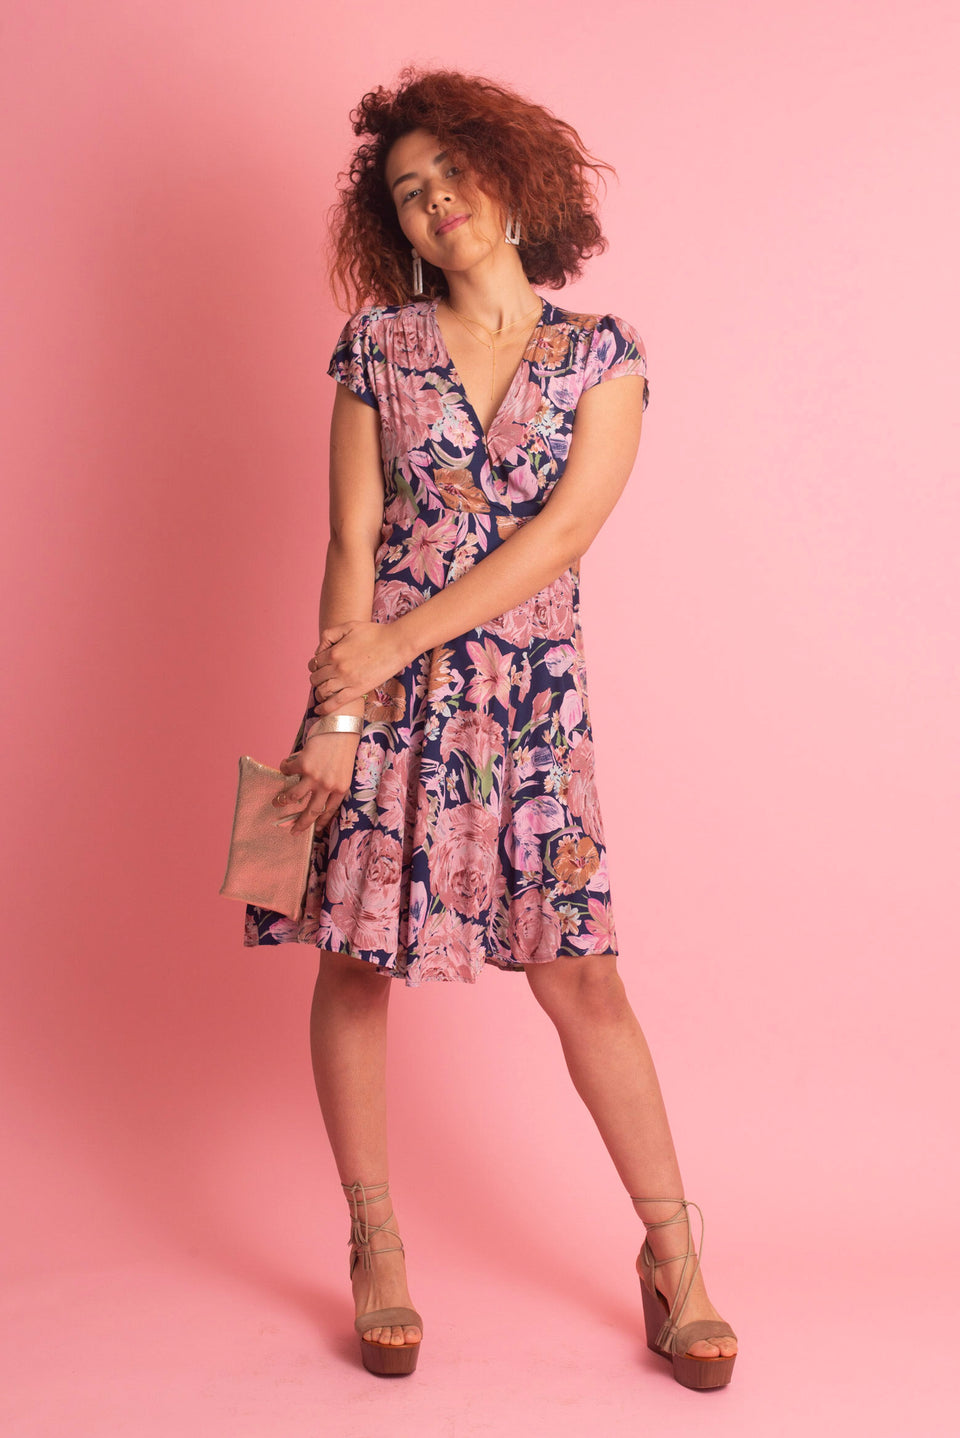 Rolla's Rose Wrap Dress